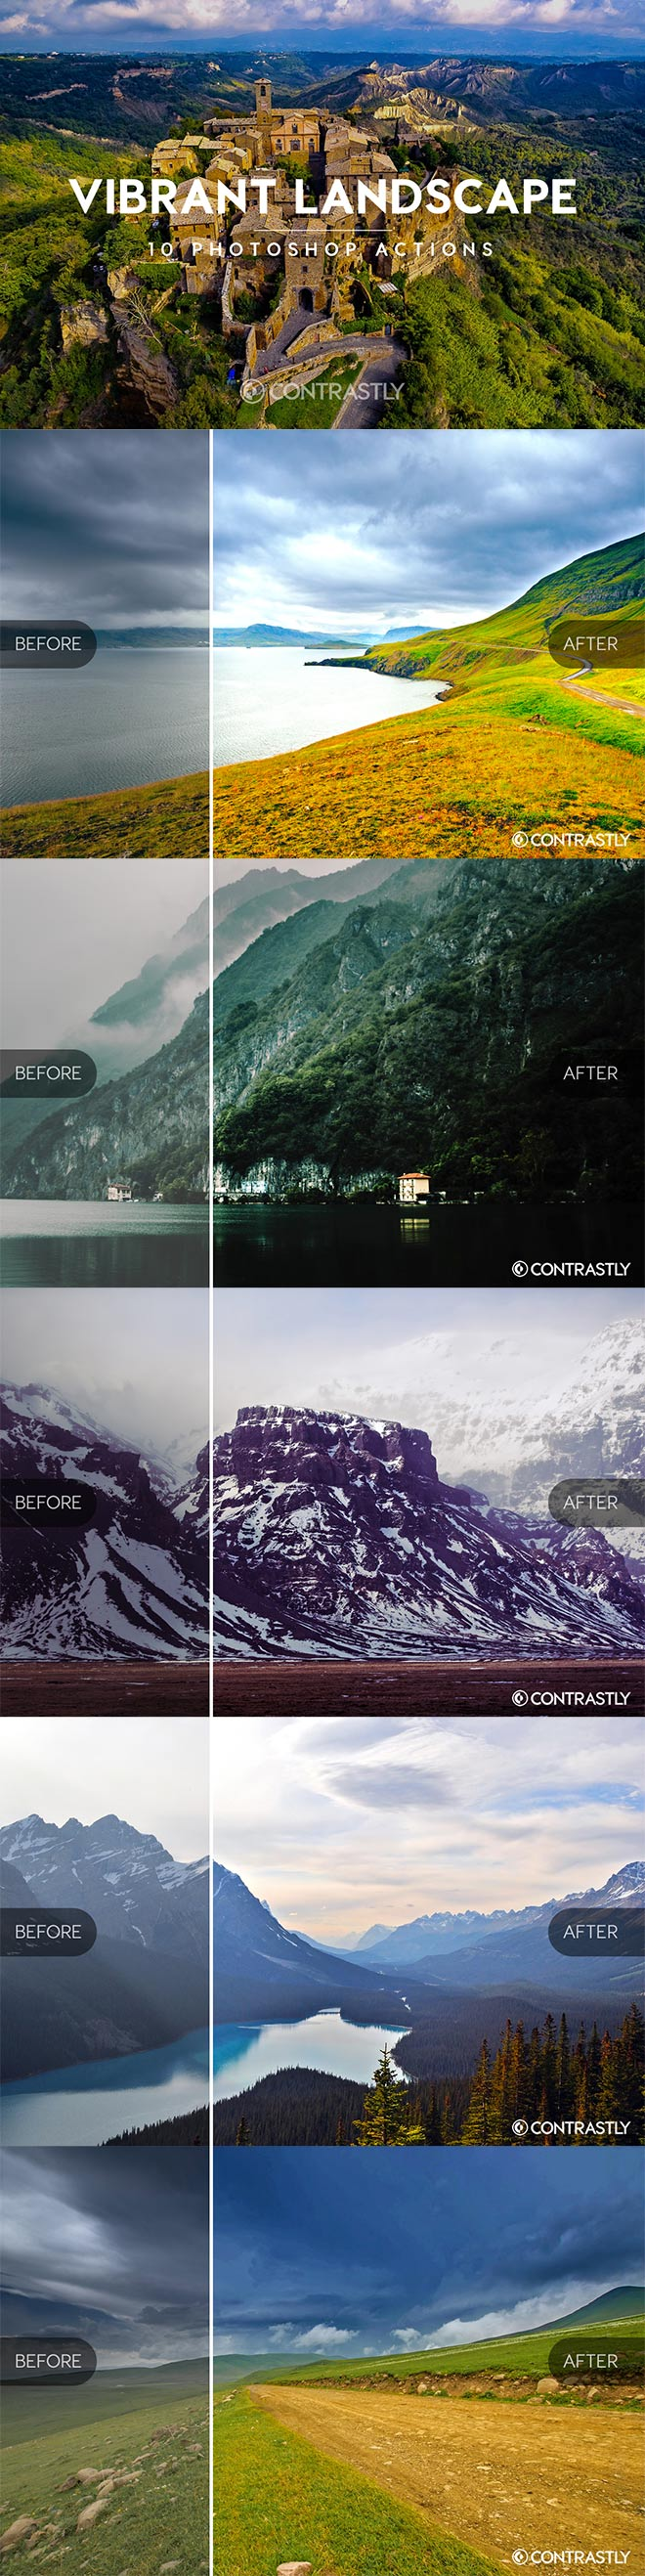 Vibrant Landscapes Photoshop Actions